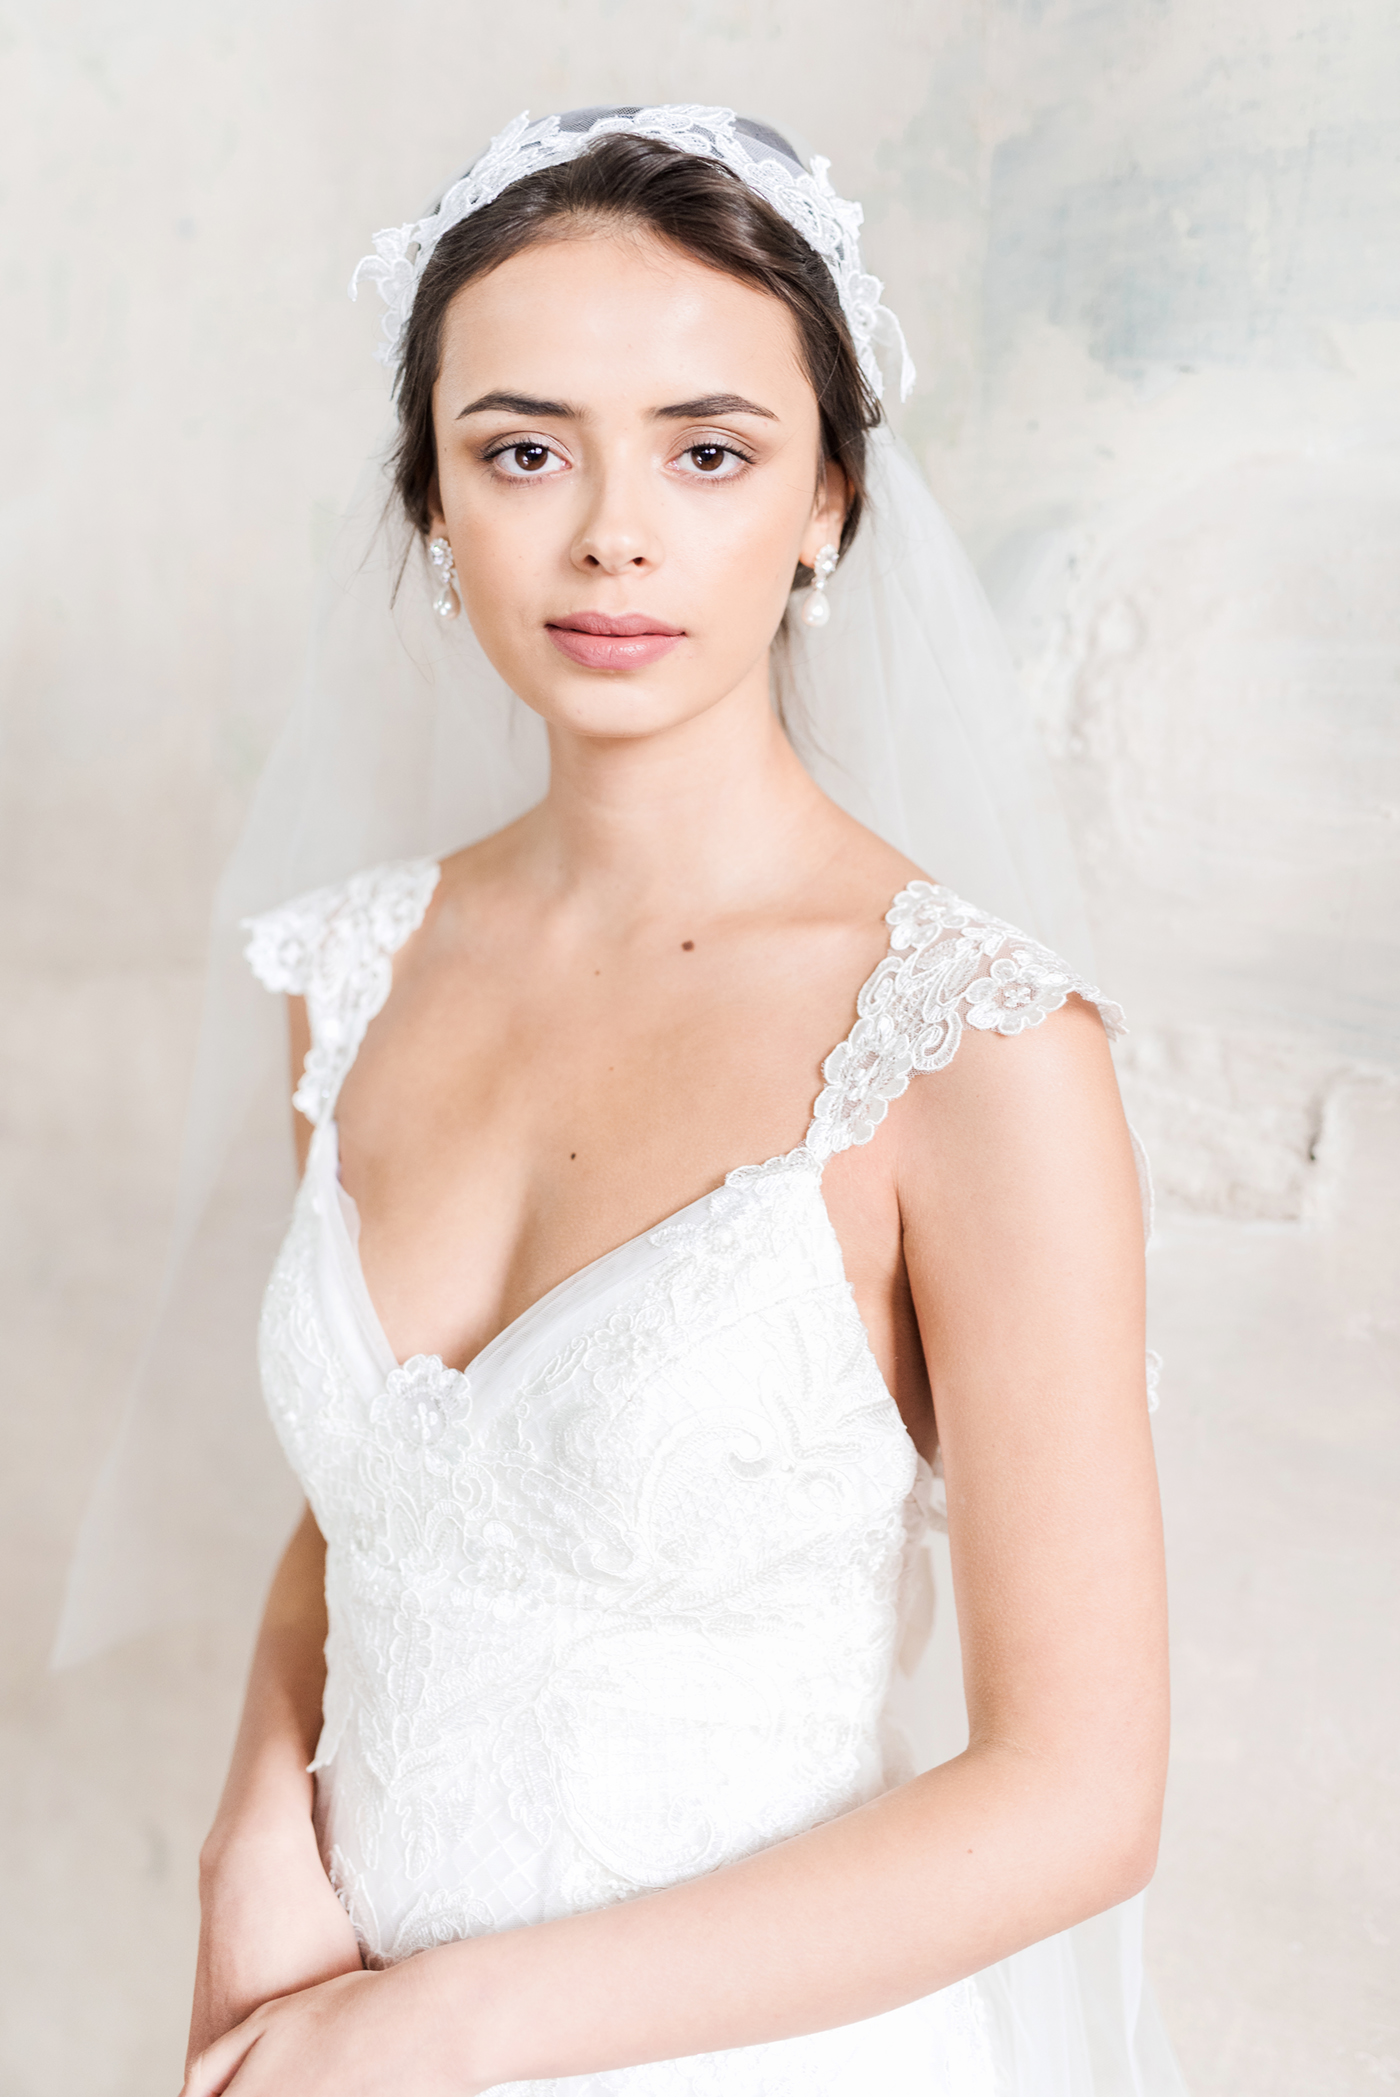 Savannah Dress - Full of whimsical romance, the sequin-highlighted tulle of the Savannah is charming and feminine. With an open v-shaped neckline, shoulder drapes of sequinned lace that extends into an open, low back, and a detailed lace belt, the Savannah exudes bridal grace.Styled with the Valencia Pearl Drop Earrings.